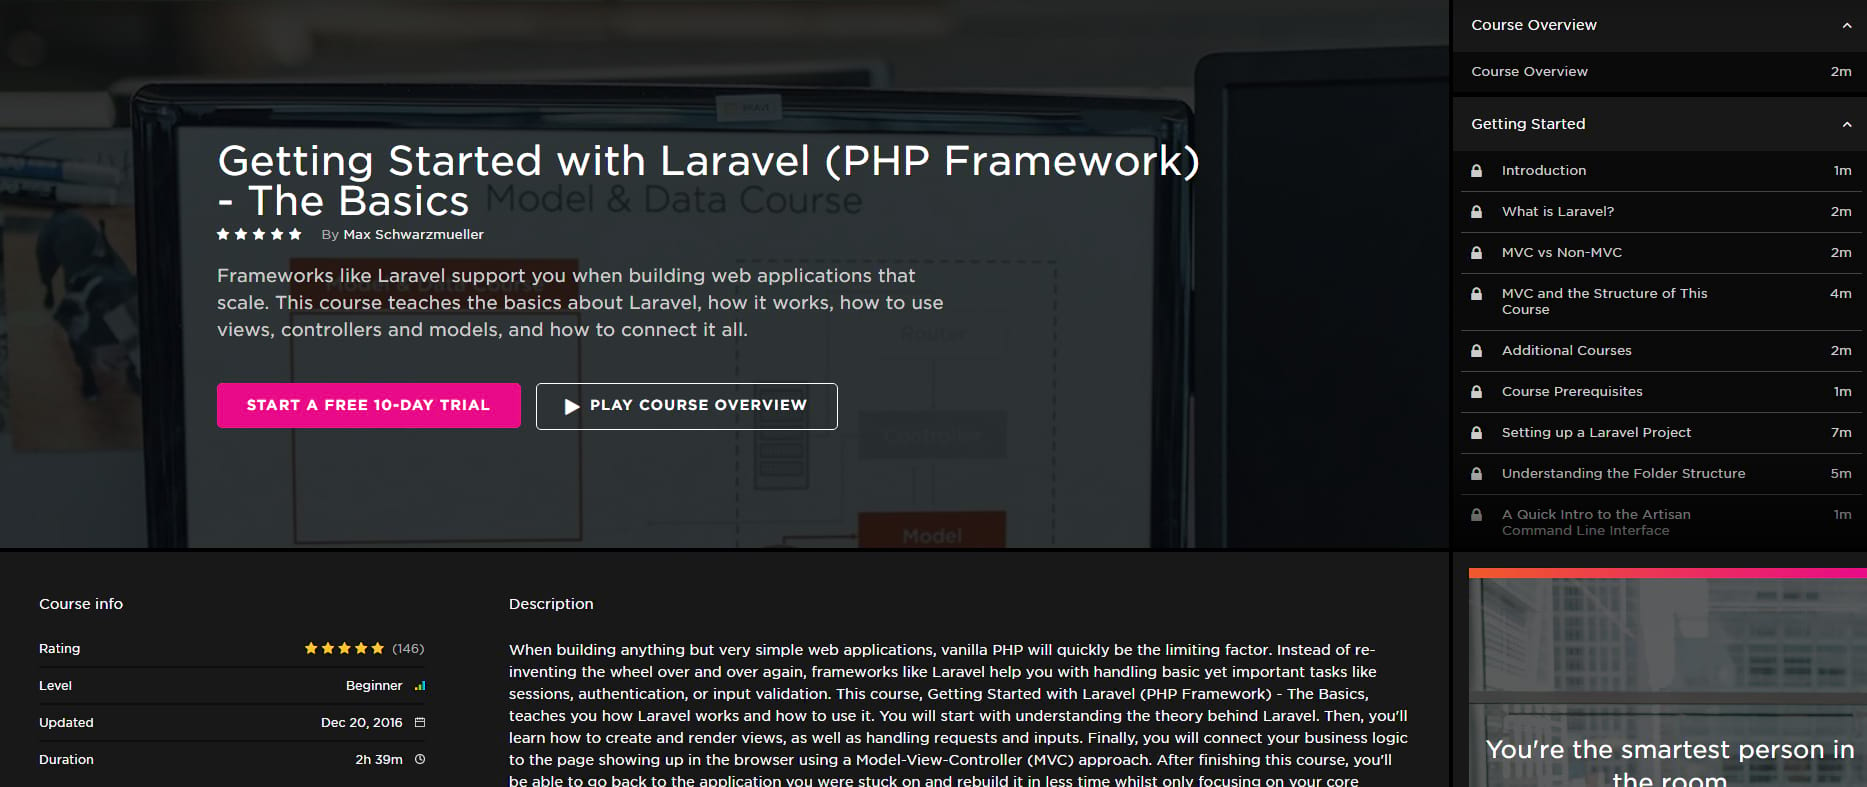 Getting started with Laravel course